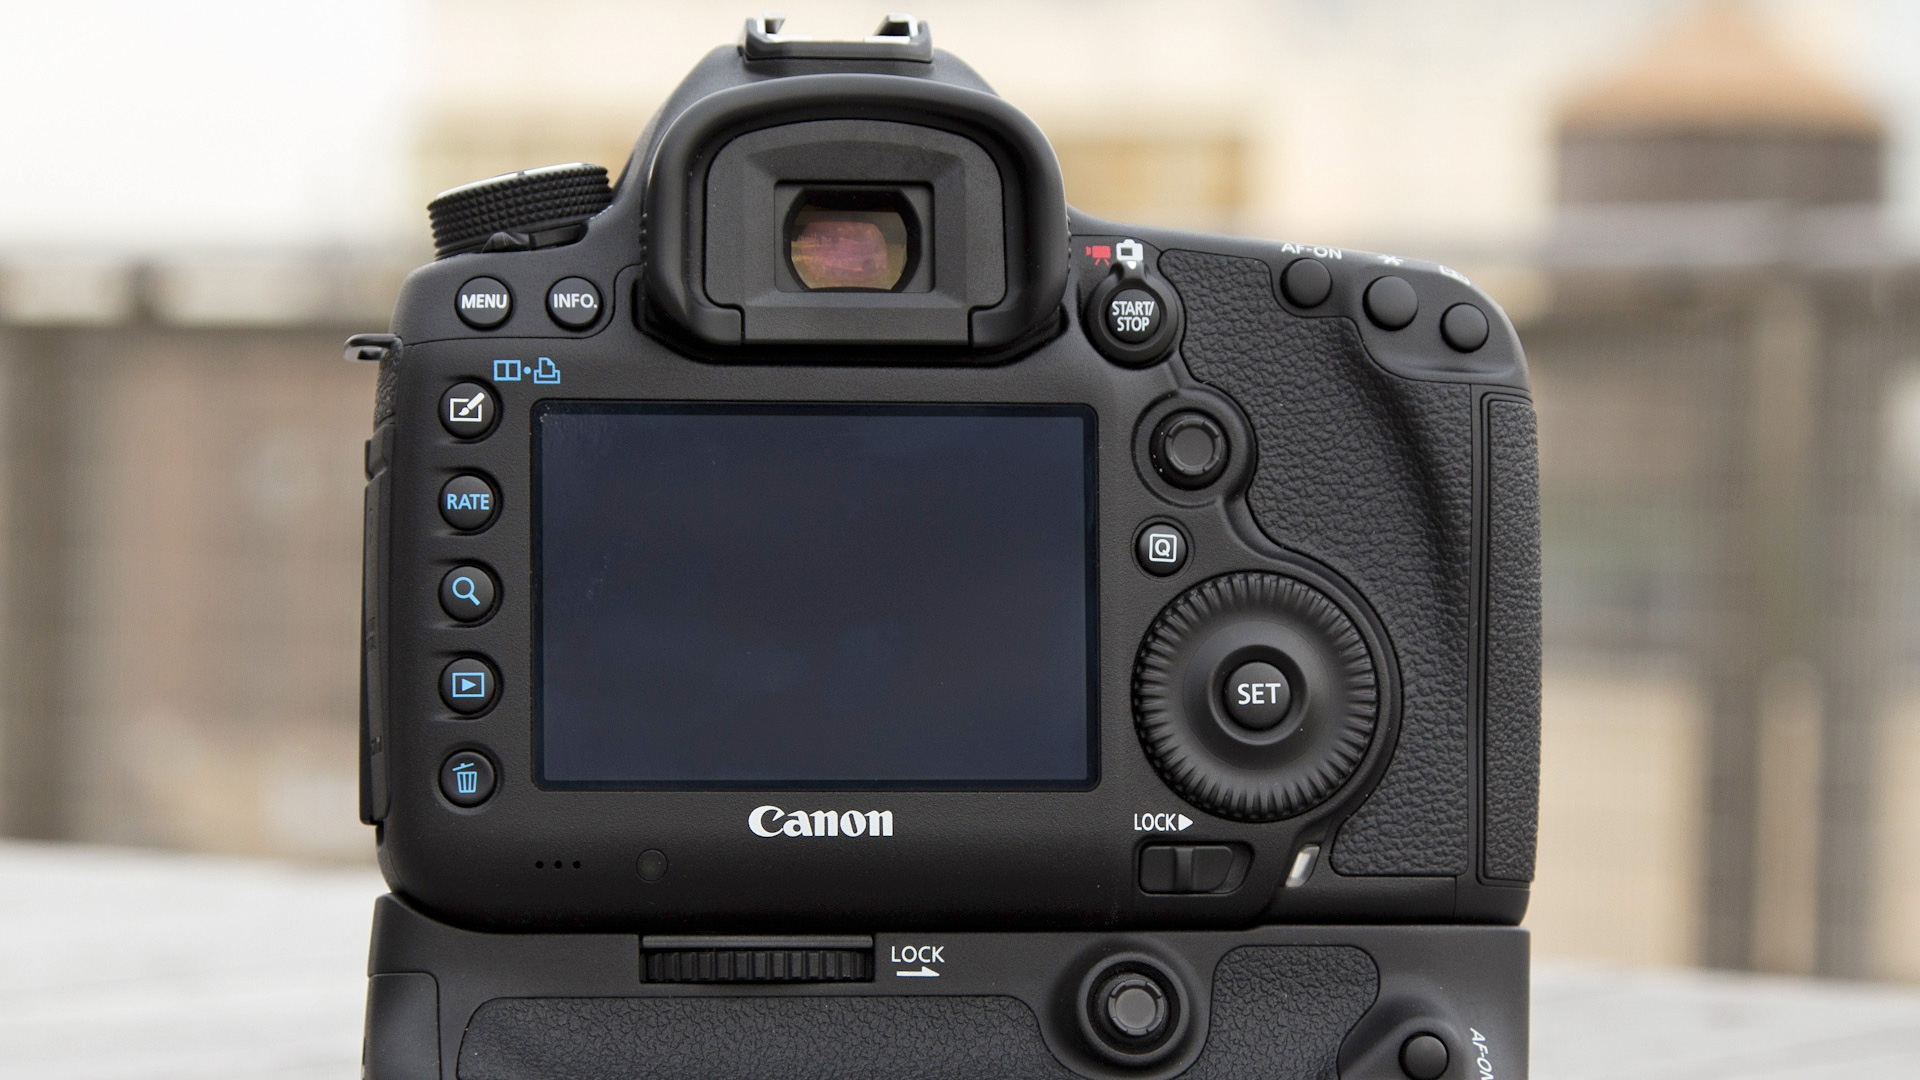 canon eos 5d mark iii review the best dslr for shooting. Black Bedroom Furniture Sets. Home Design Ideas